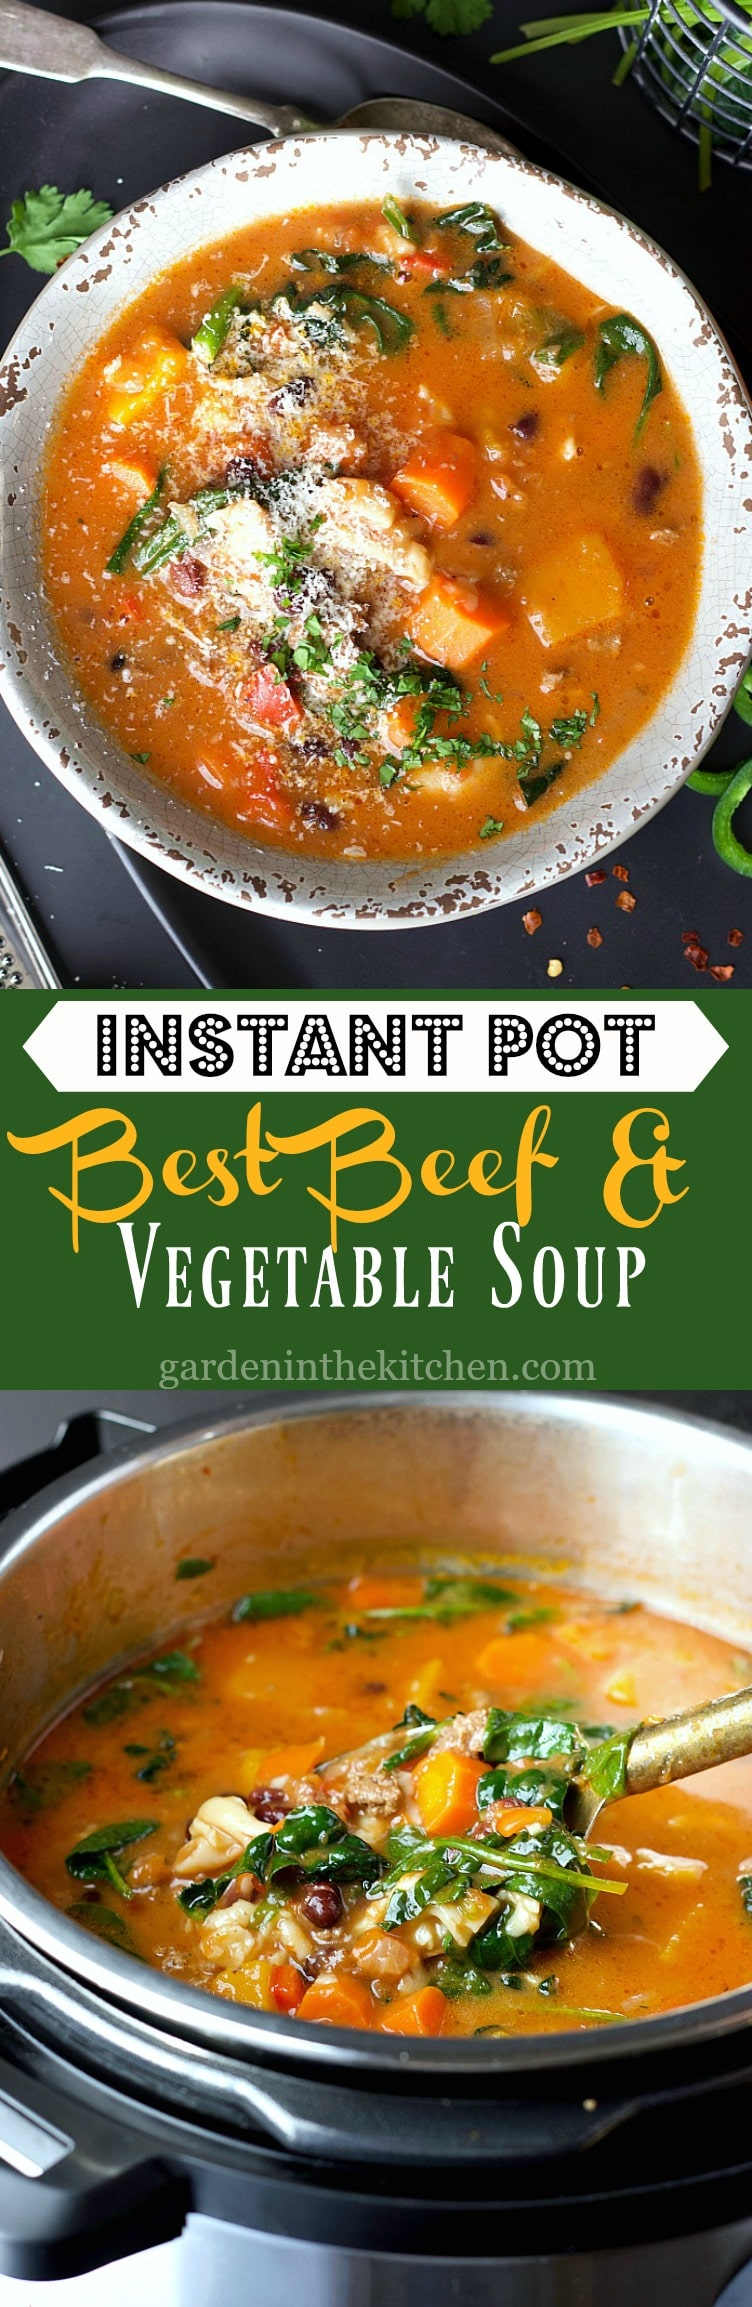 Instant Pot Beef & Vegetable Soup | Garden in the Kitchen